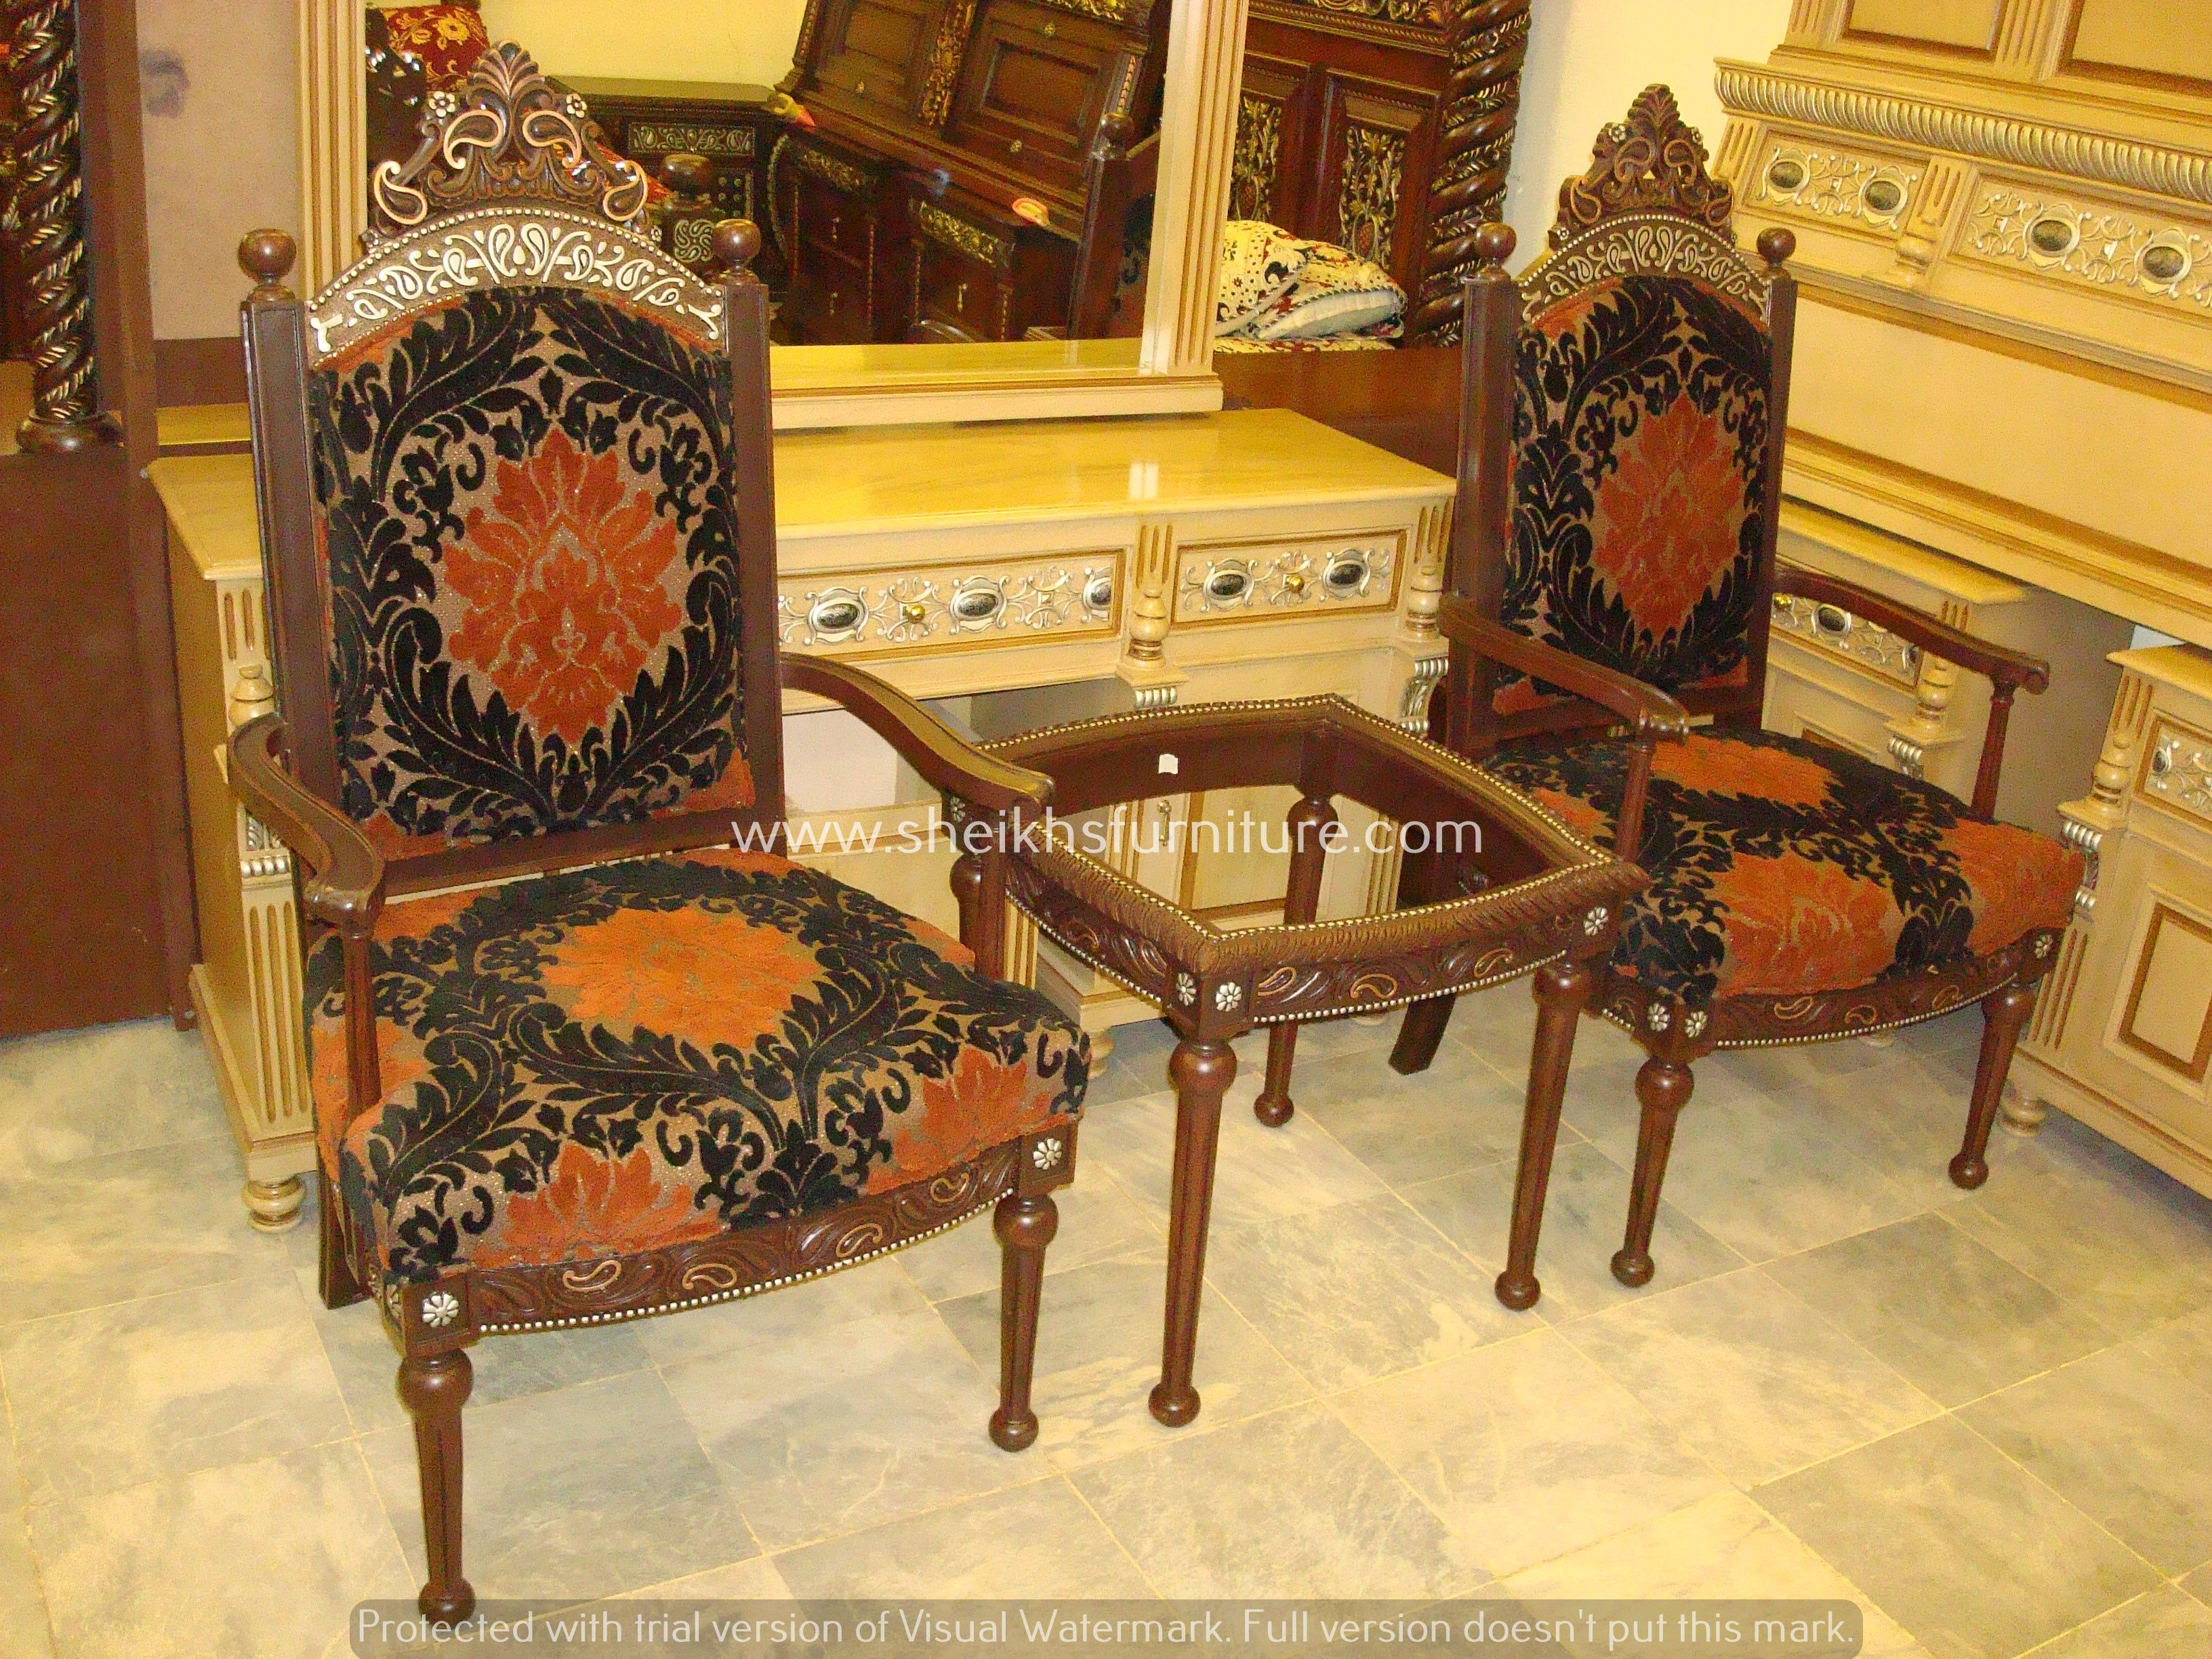 Bedroom Chair Table Set Fabric Material This Is Our Solid Rosewood Classic Made In